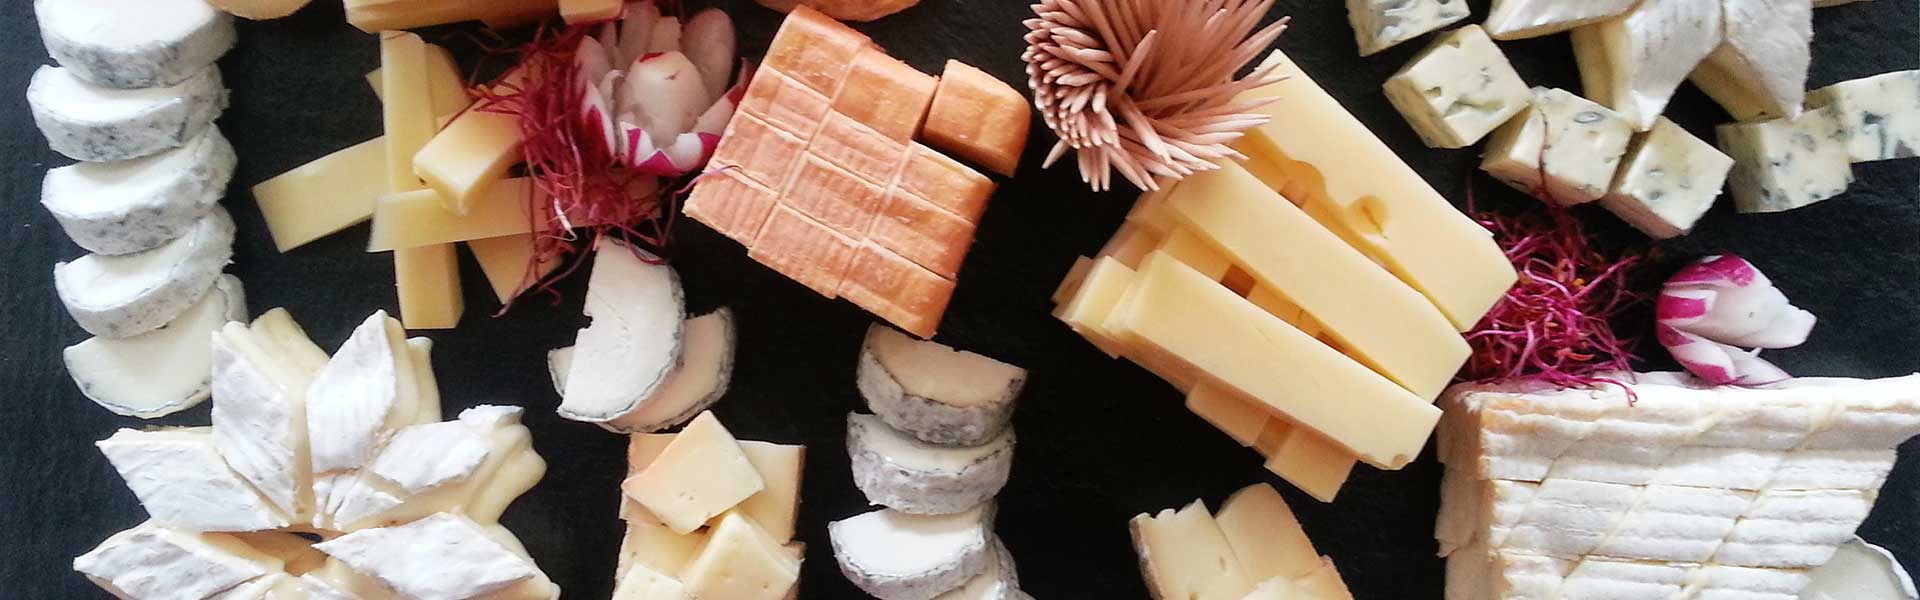 https://thefrenchgourmet.com/wp-content/uploads/2018/02/food-station-catering-cheese-table.jpg